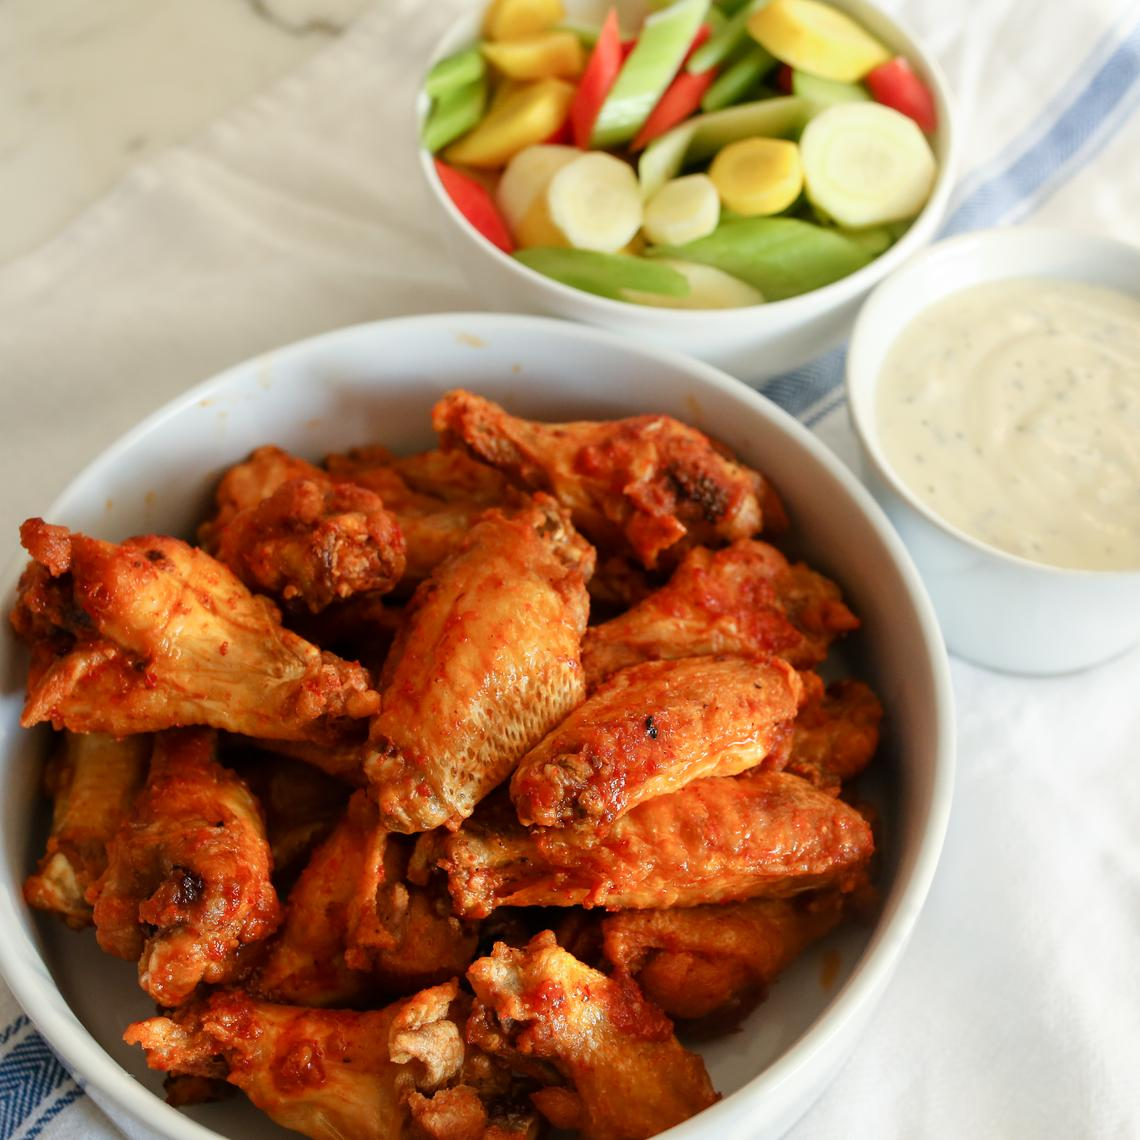 Fried Buffalo Wings